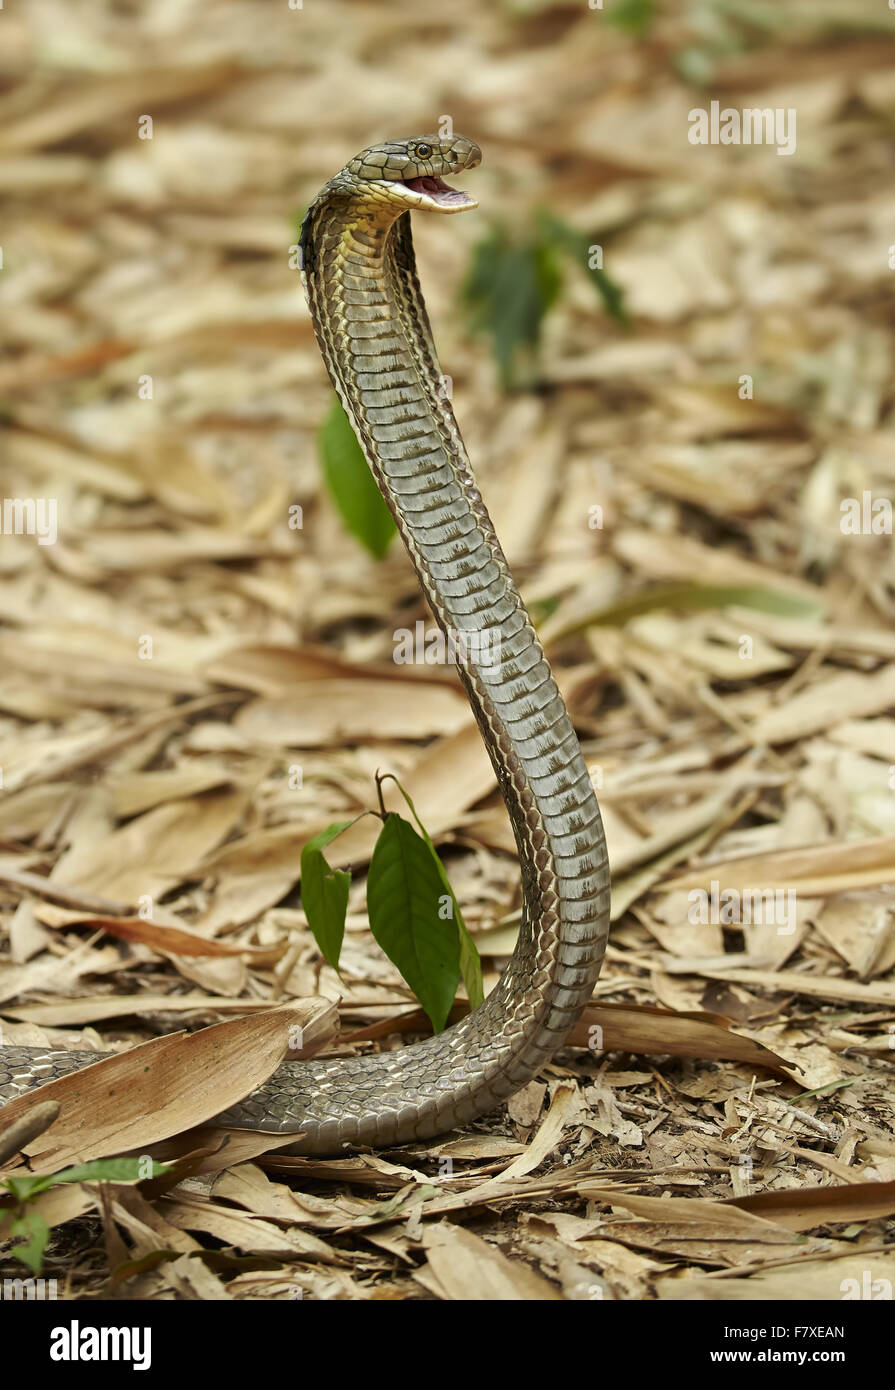 King Cobra (Ophiophagus hannah) adult, rearing up with